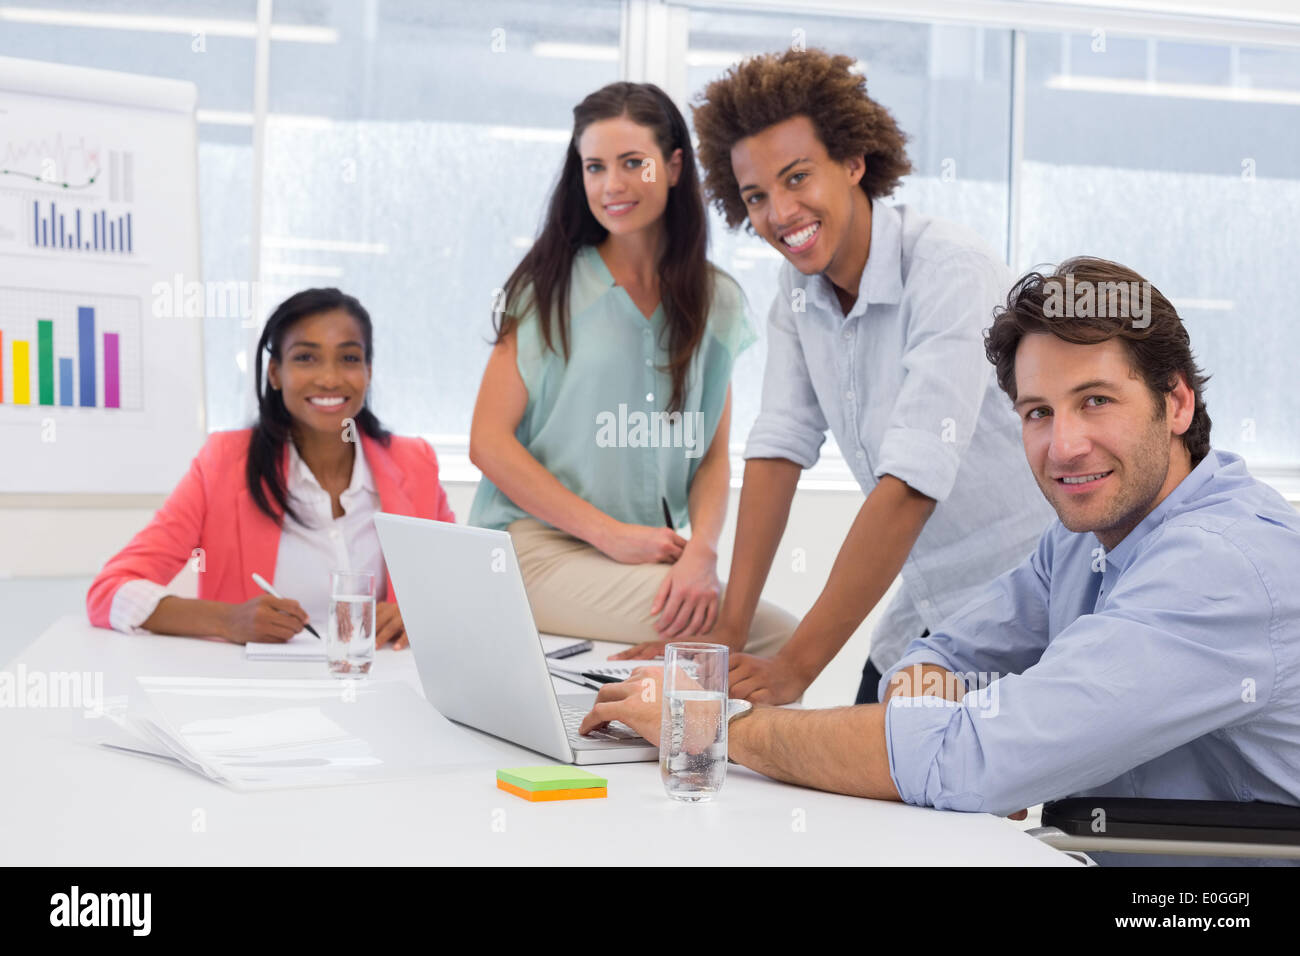 Attractive business people in the workplace - Stock Image